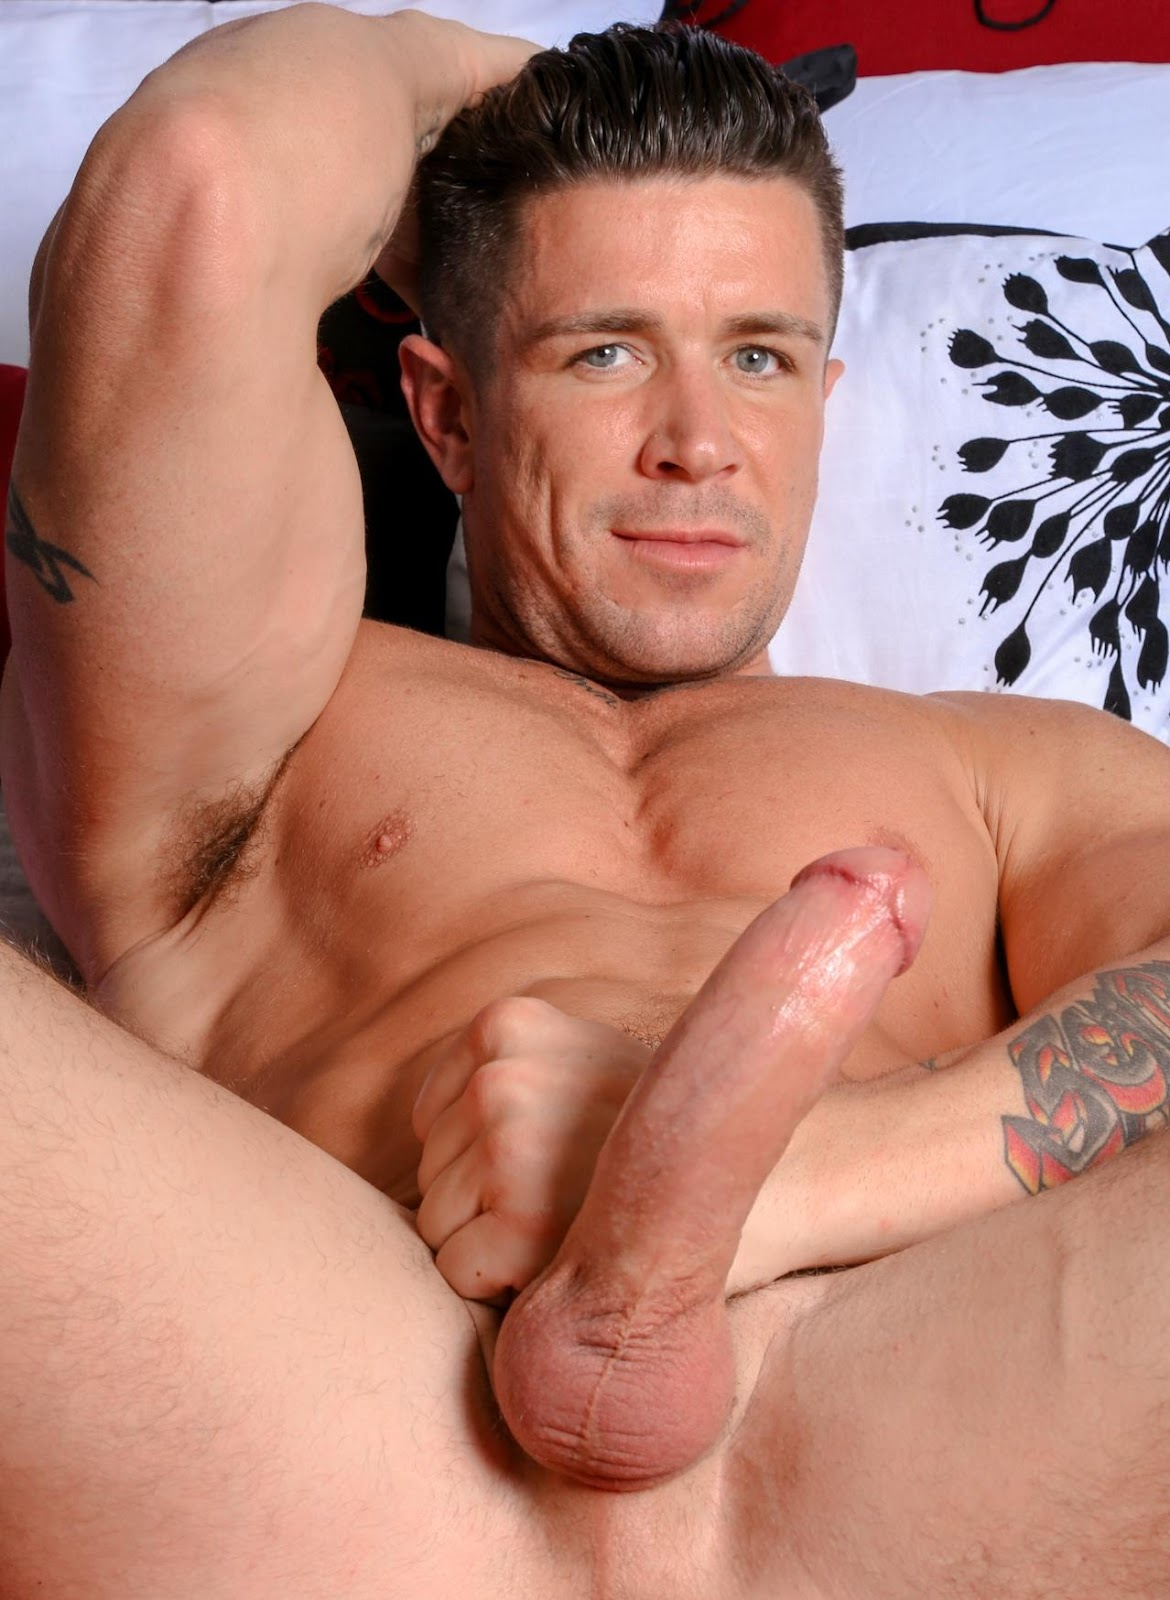 Marc vidol and marcello russo jerk off 7